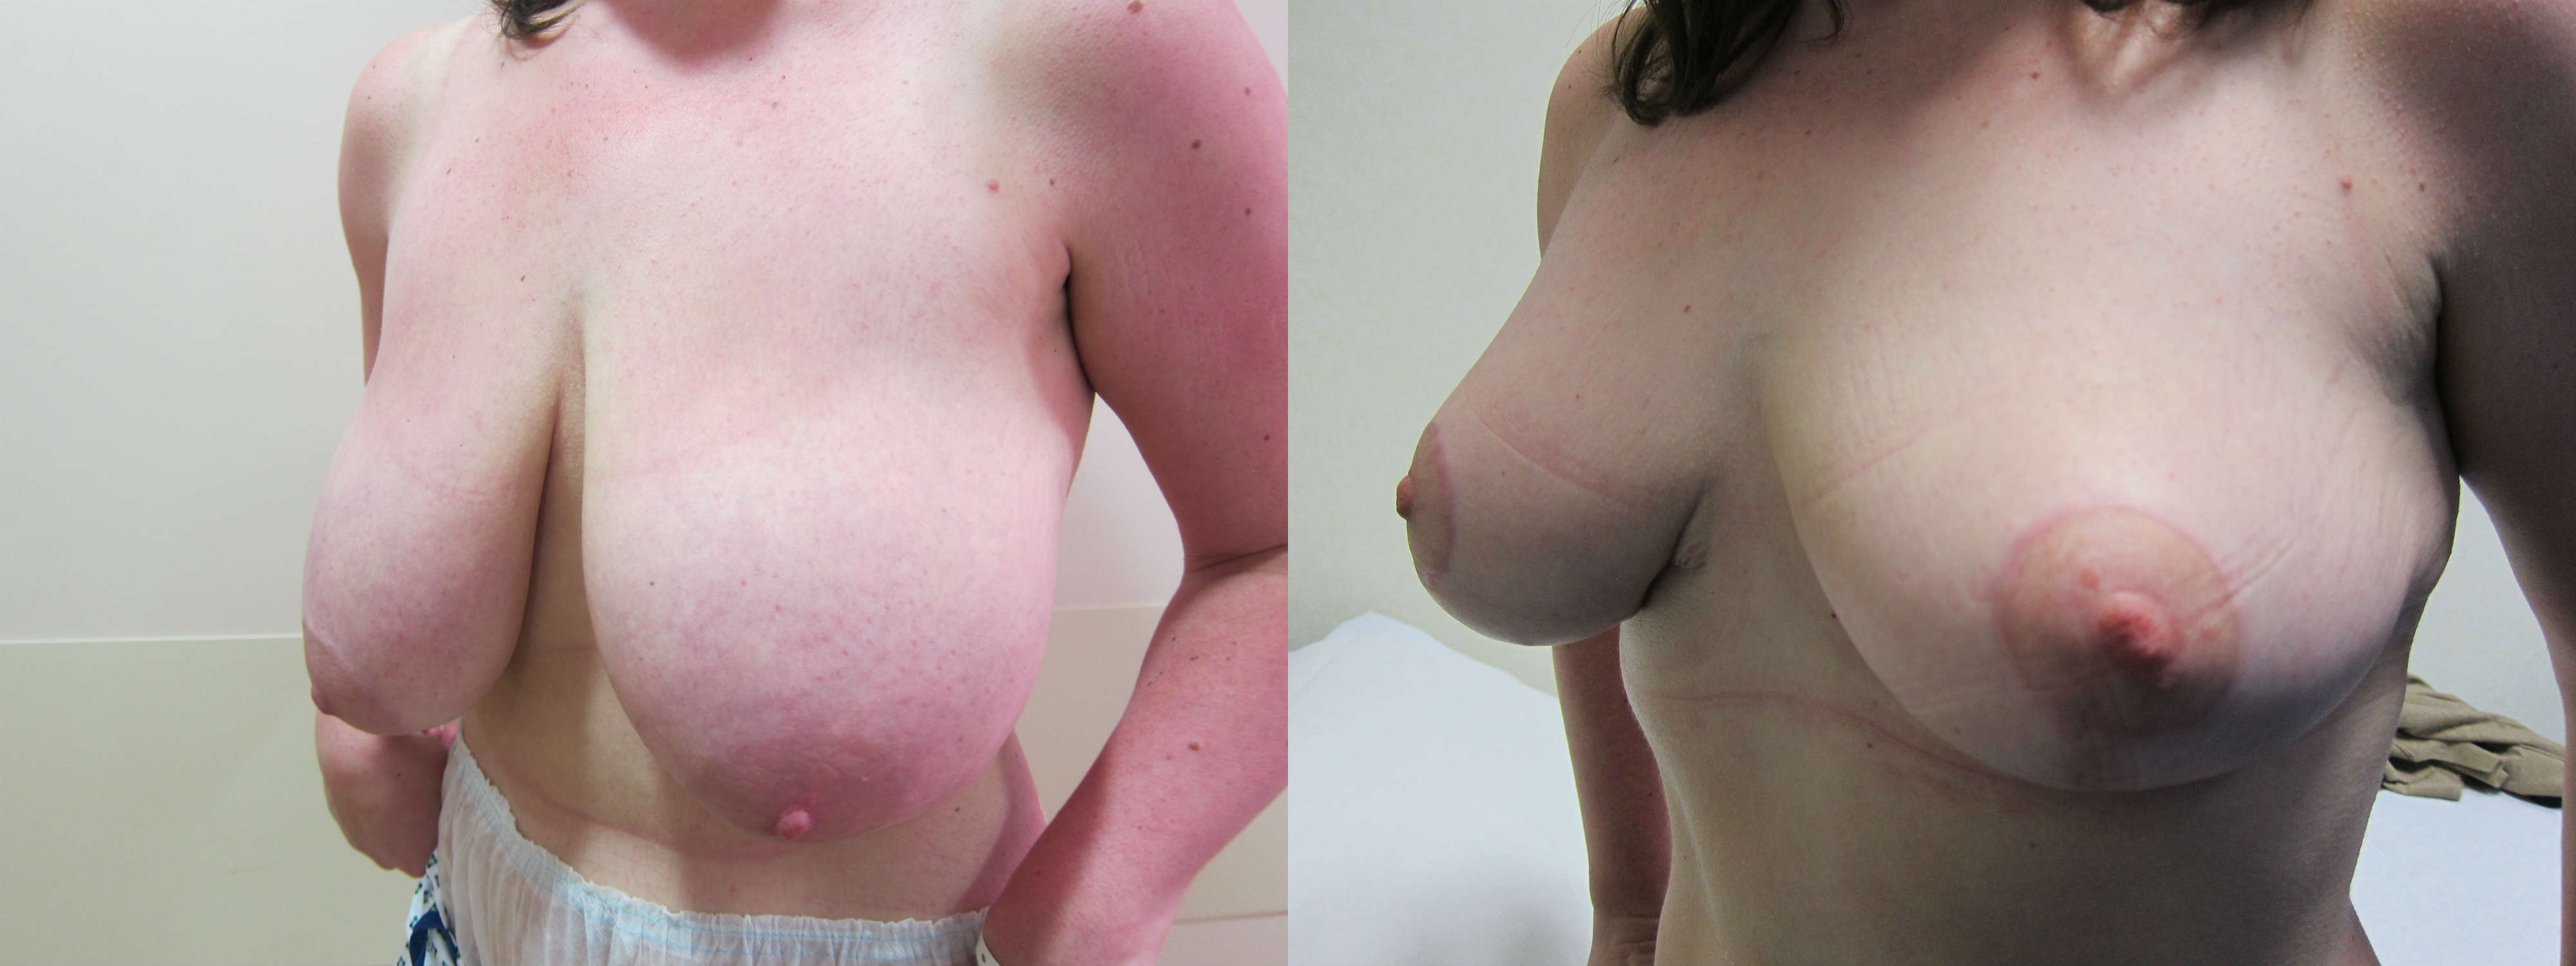 Breast Reduction Before After Pictures - Perimeter